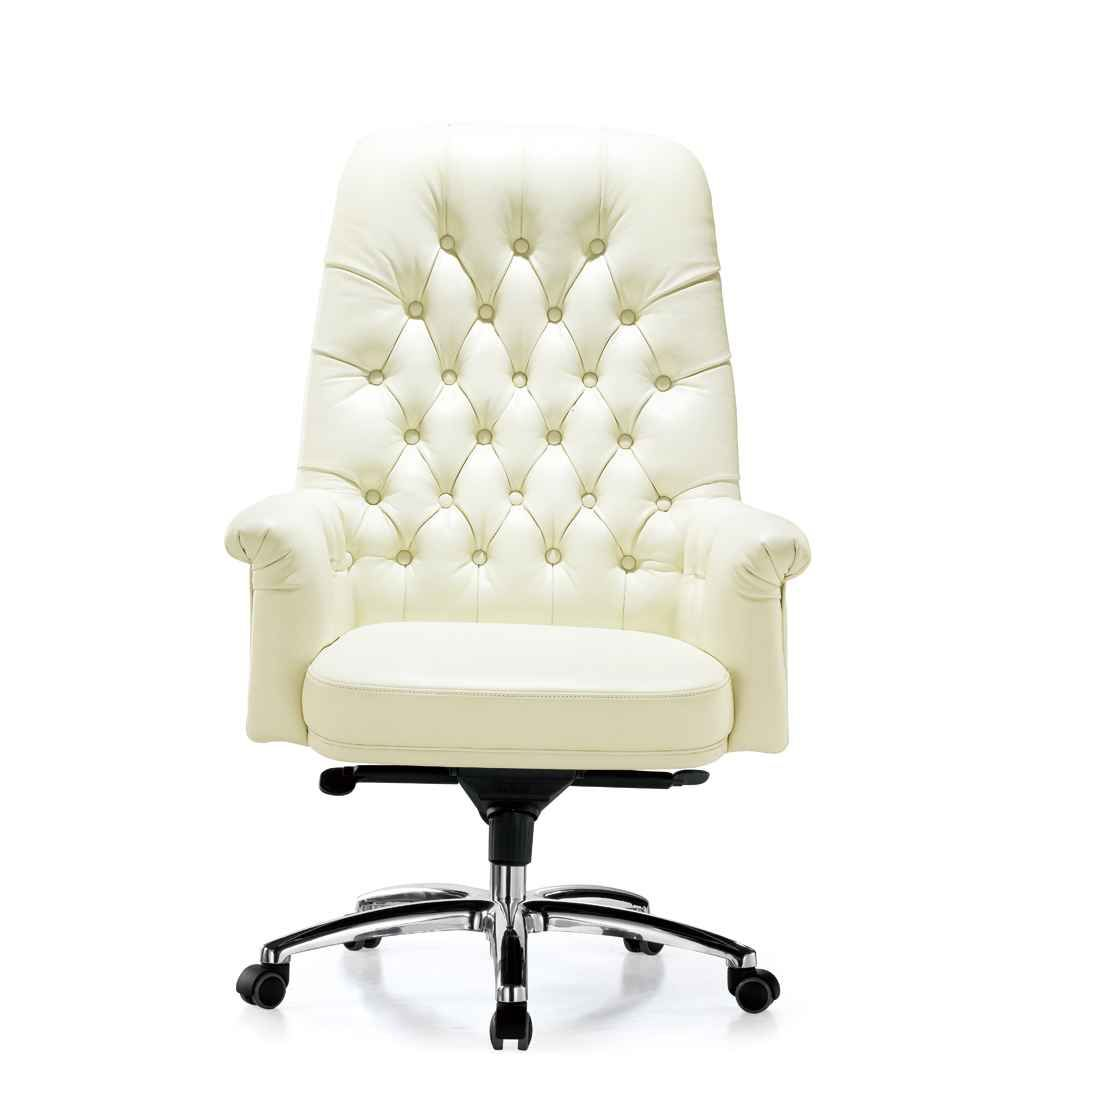 comfortable computer chairs. 20 Stylish And Comfortable Computer Chair Designs Chairs